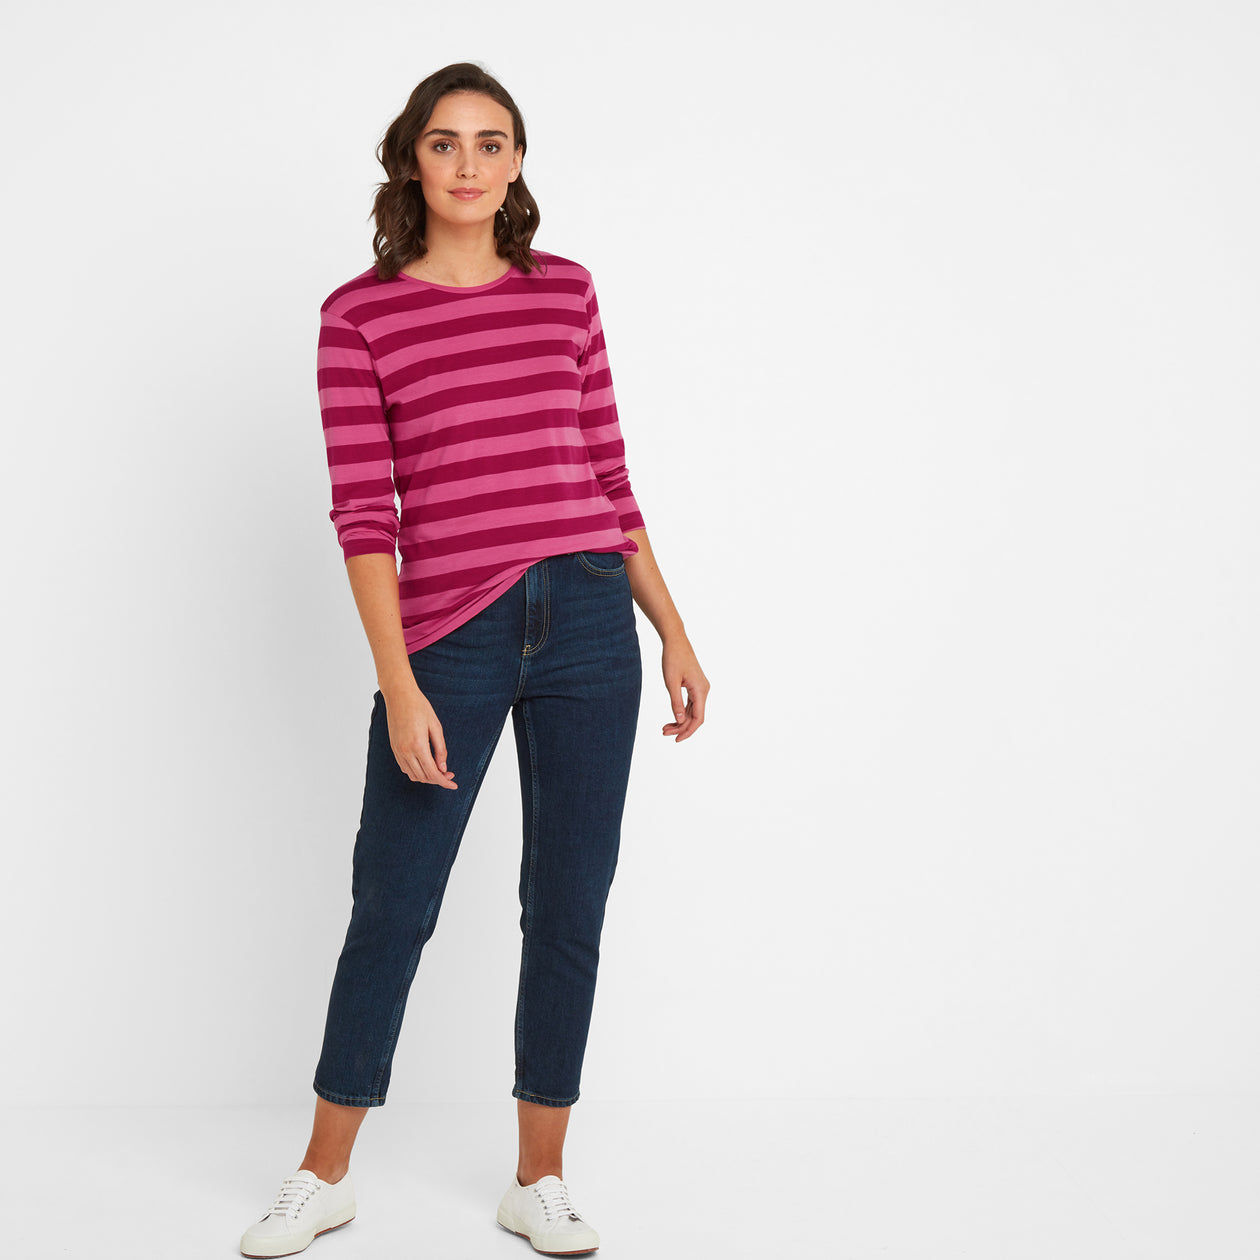 Sandsend Womens Long Sleeve Stripe T-Shirt - Sangria image 4